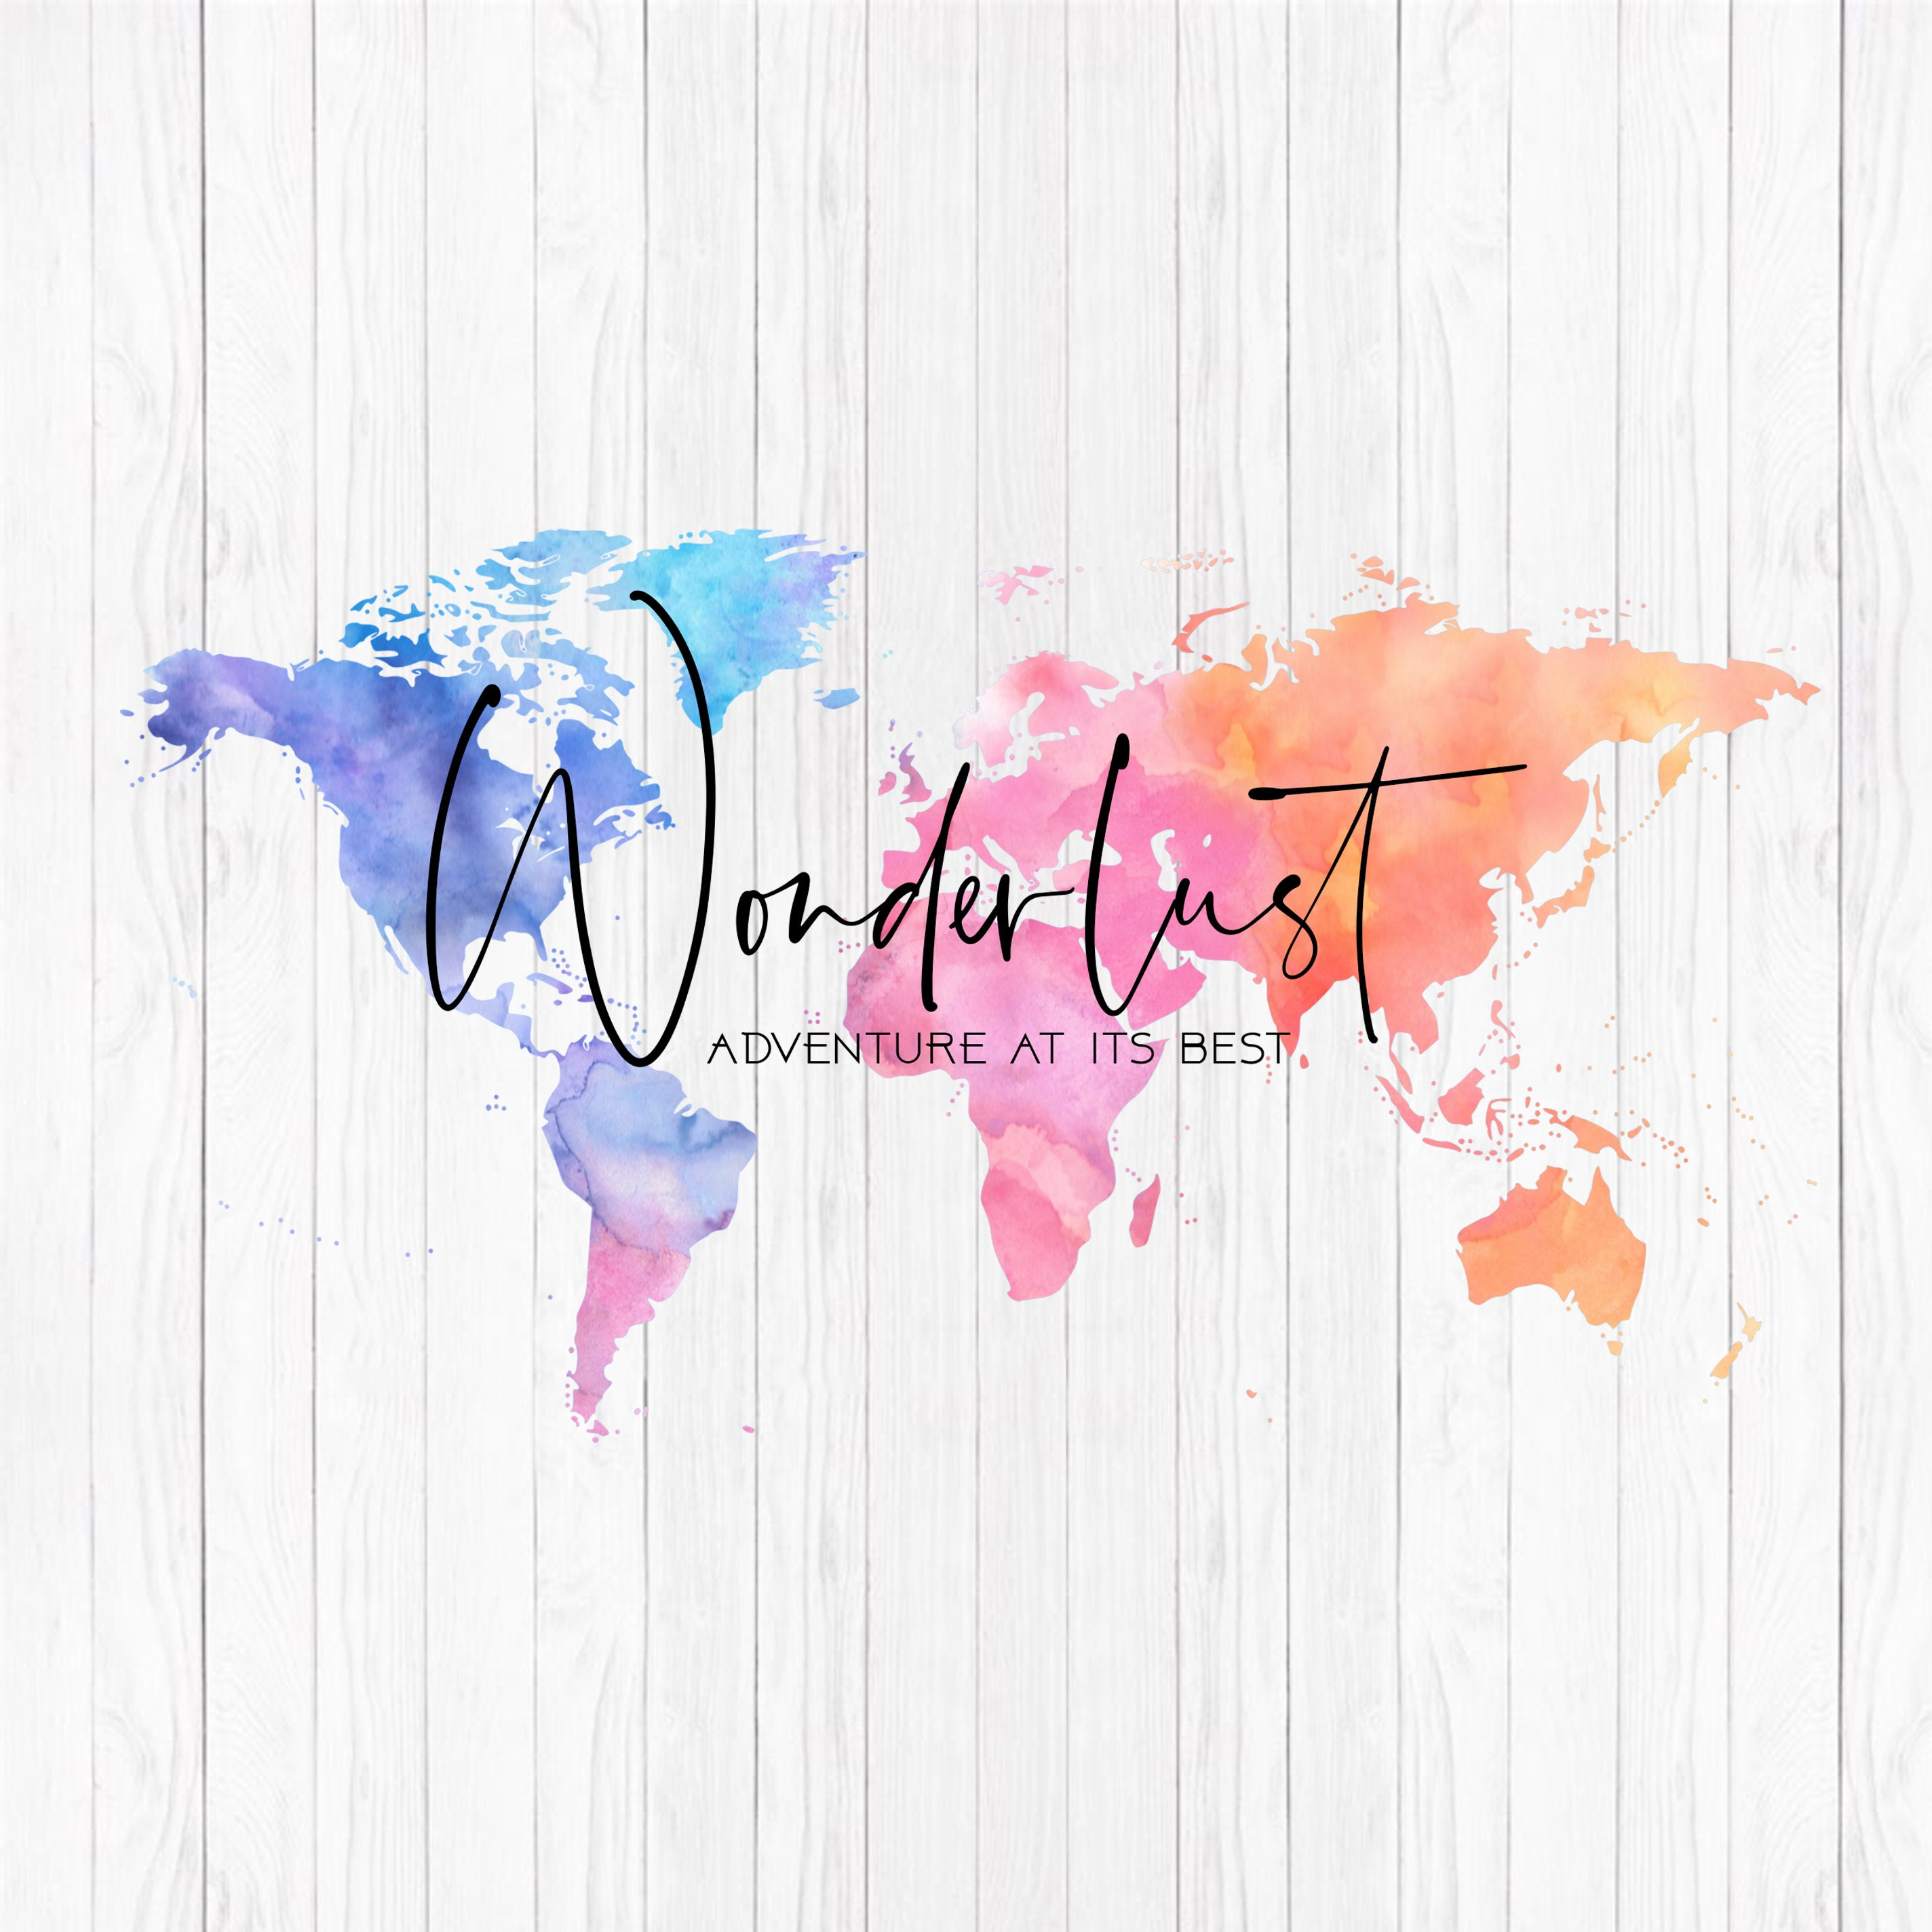 World Map Watermark.Wonderlust World Map Logo With Watercolor Effect Matching Etsy